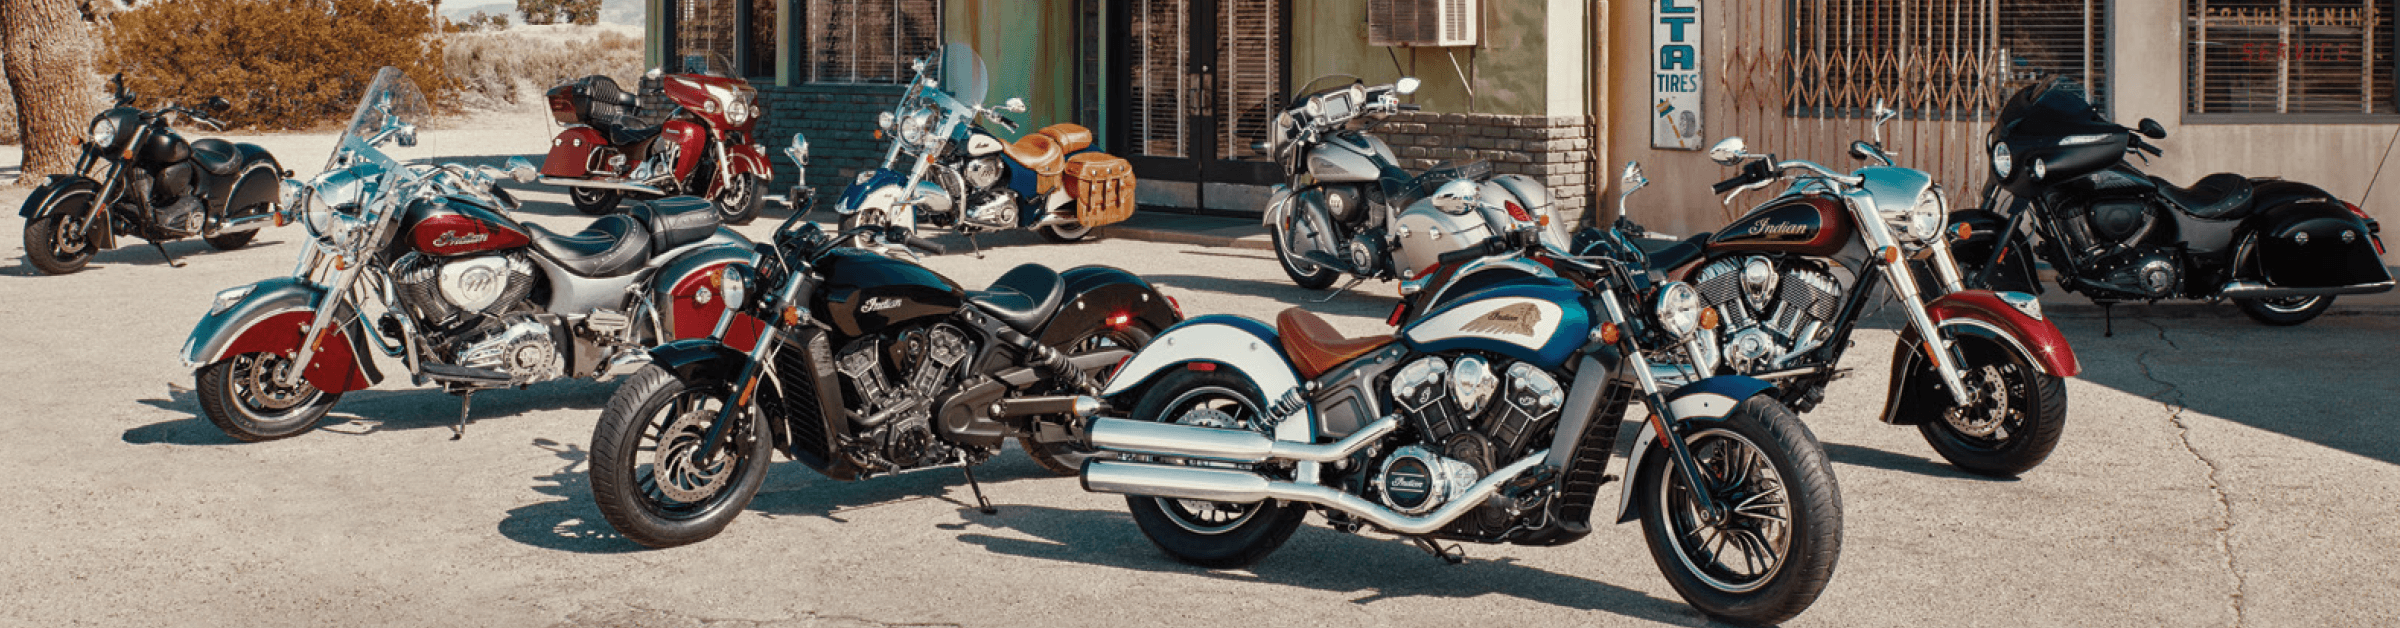 2017 Indian Motorcycle Line Up